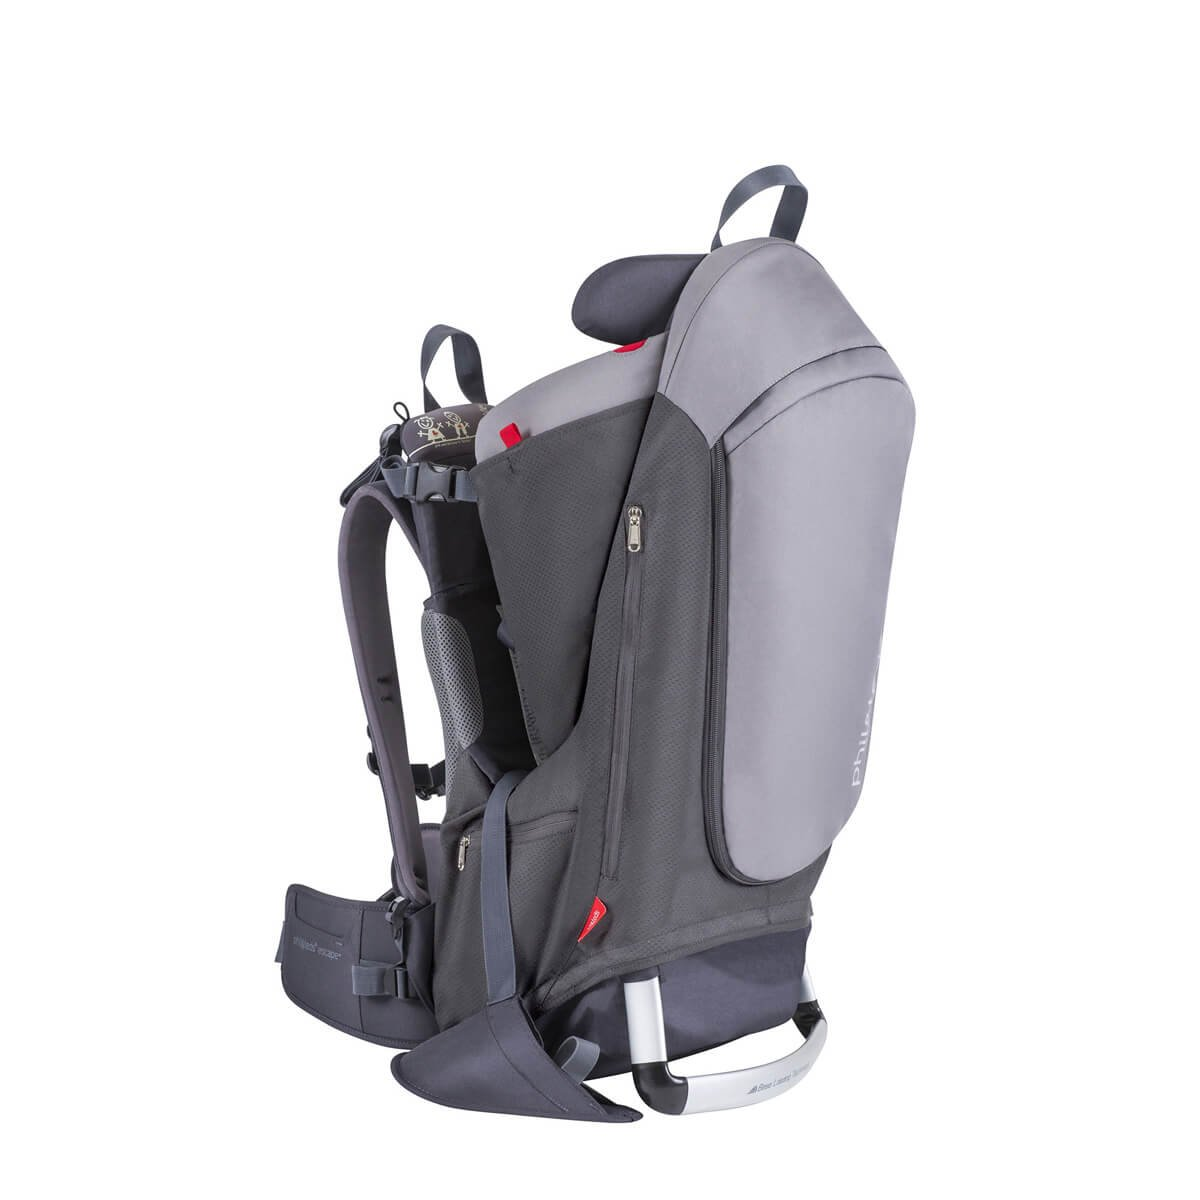 phil&teds Escape Child Carrier Frame Backpack, Charcoal – Height Adjustable Body-Tech Harness - Articulating Dual Core Waist Belt – Includes Hood, Daypack, Change Mat – 30L Storage – 2 Year Guarantee